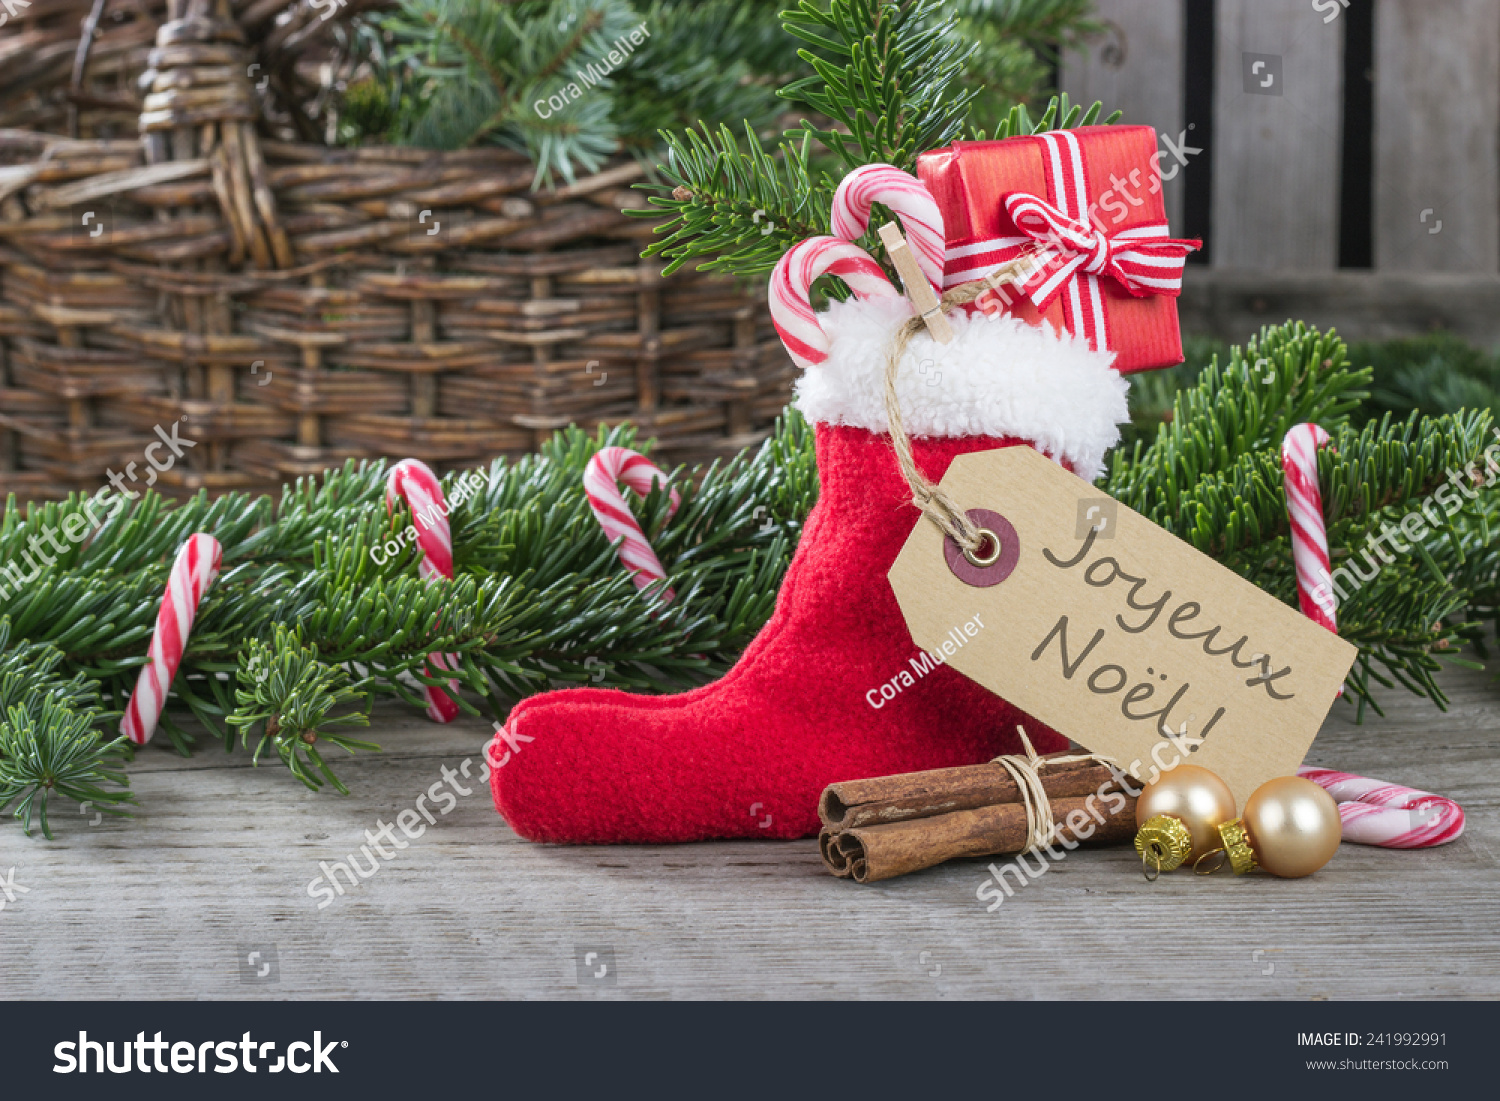 French Christmas Card Red Sock Gifts Stock Photo (Edit Now ...